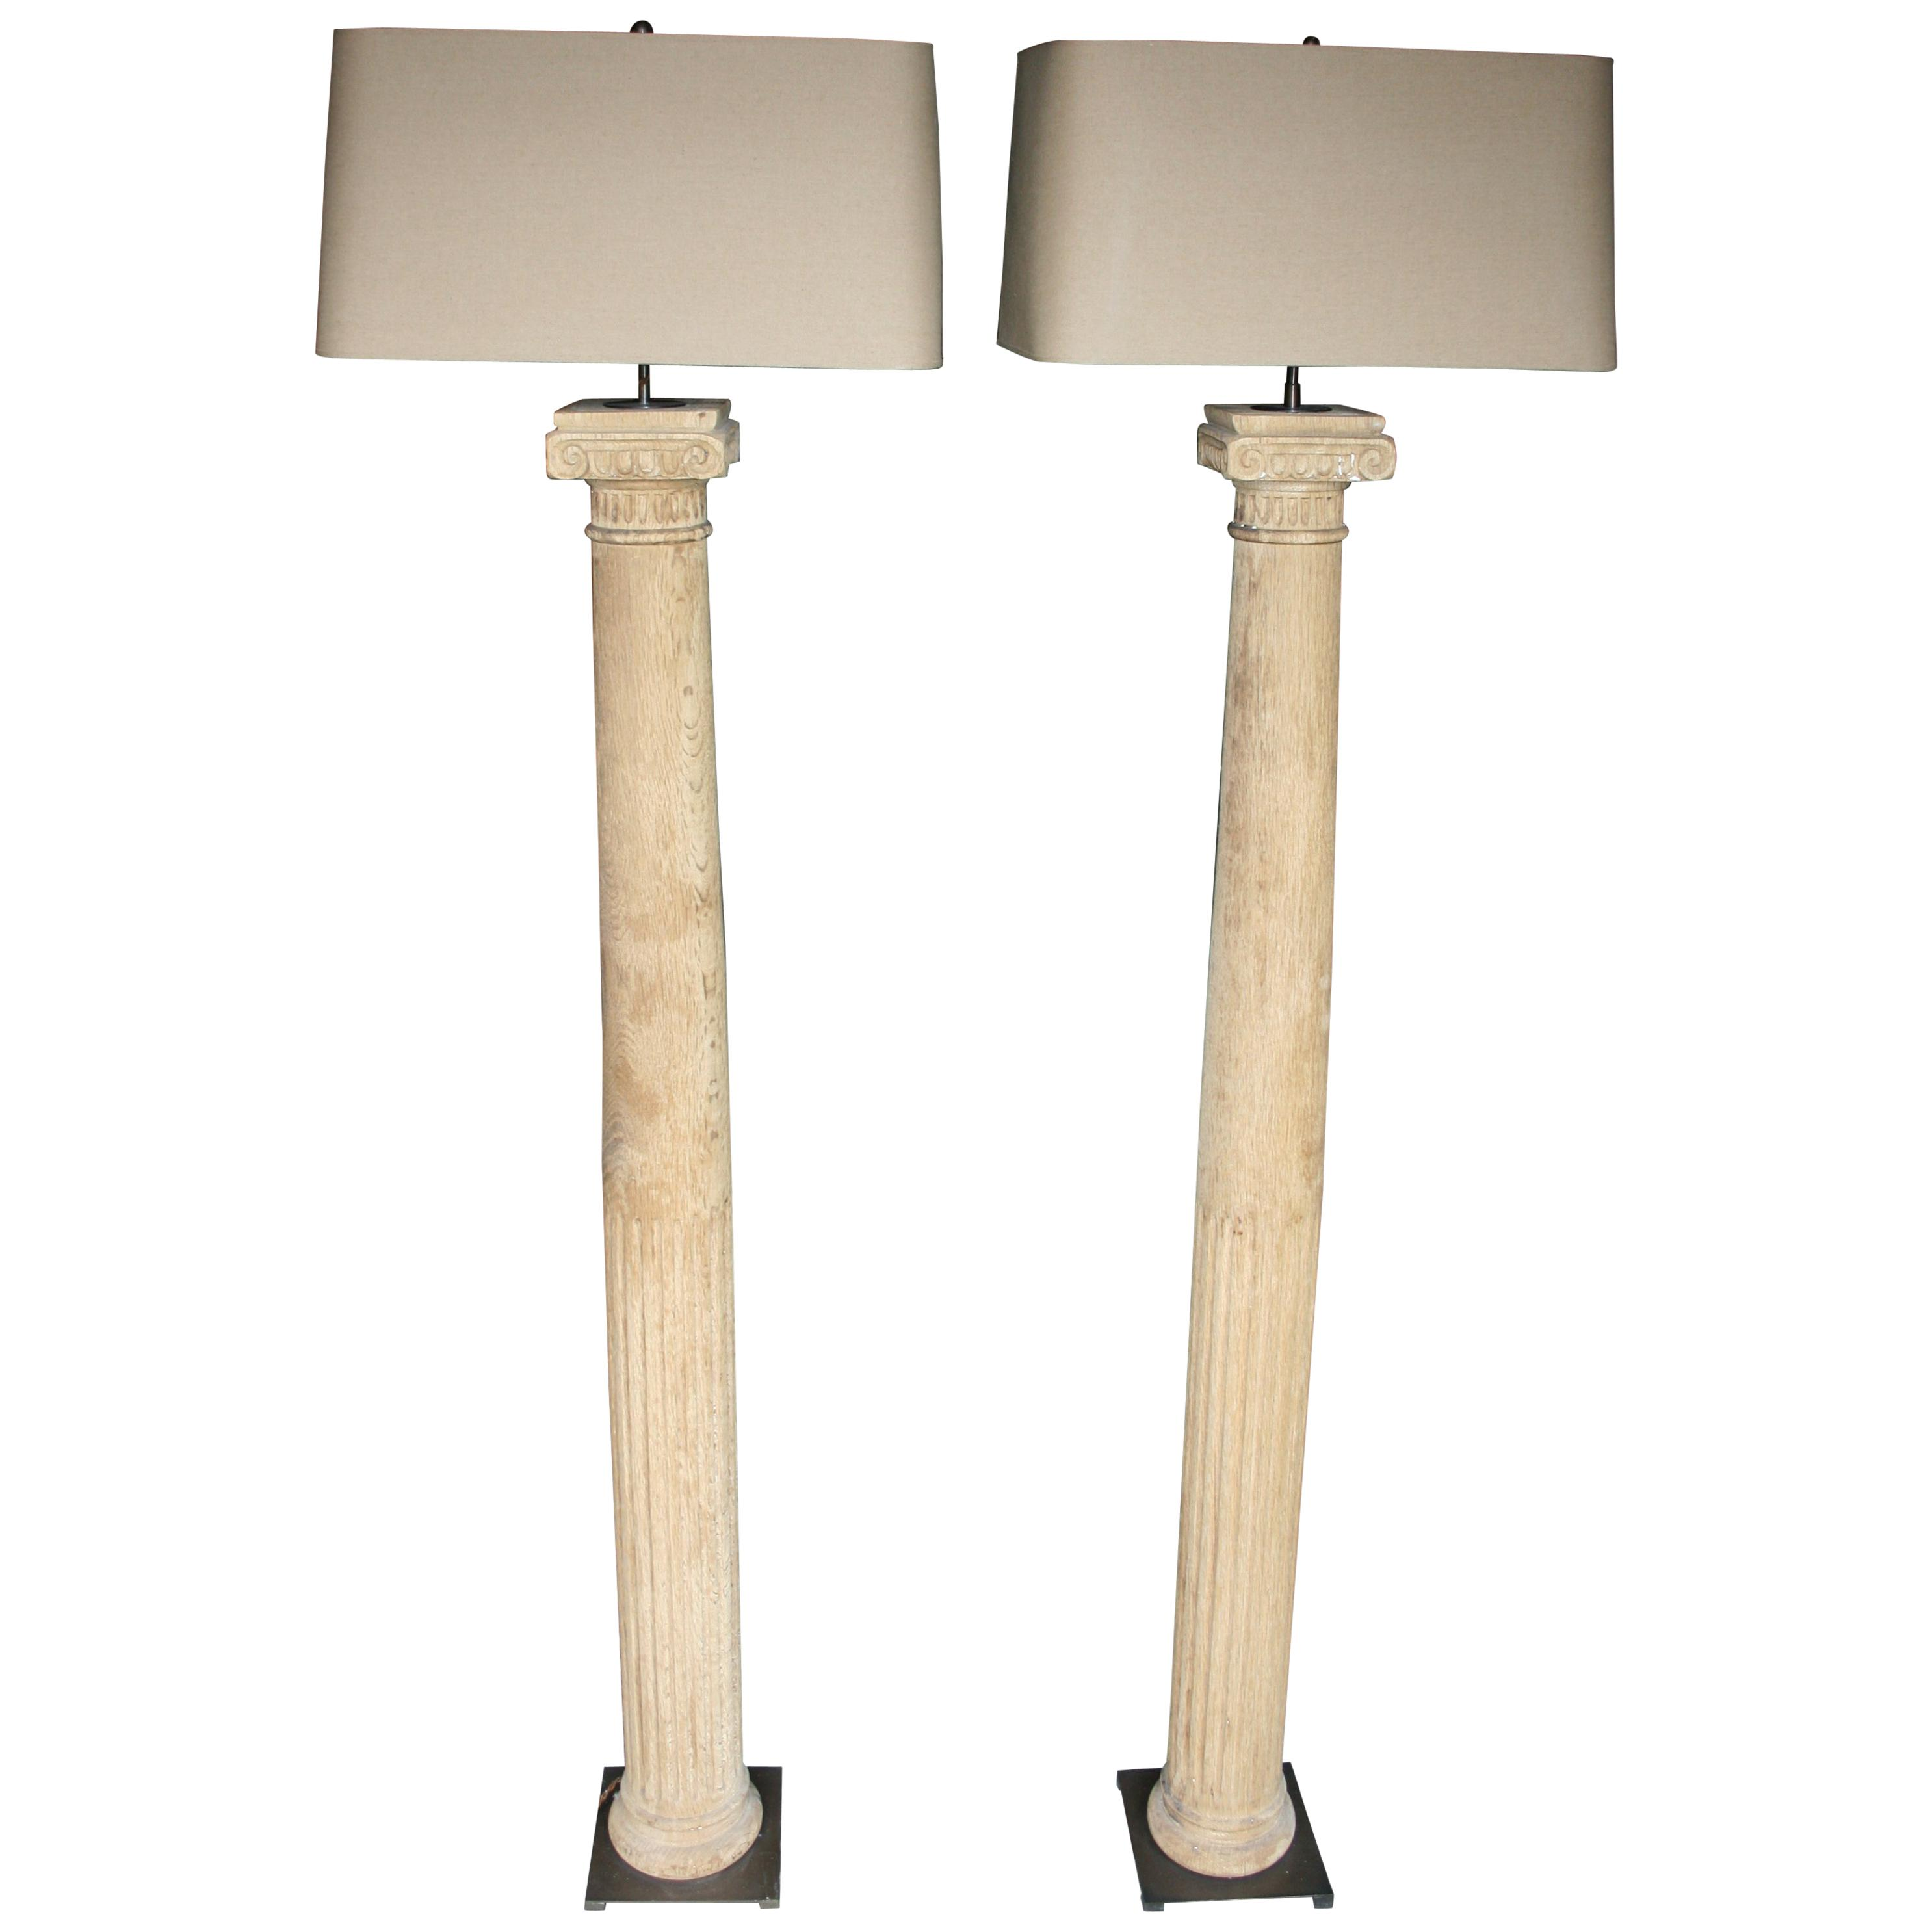 century floor lamps for master nautical accent table drum throne seat small dining room sets restoration hardware sectional gray chair egg bunnings bathroom storage cabinet